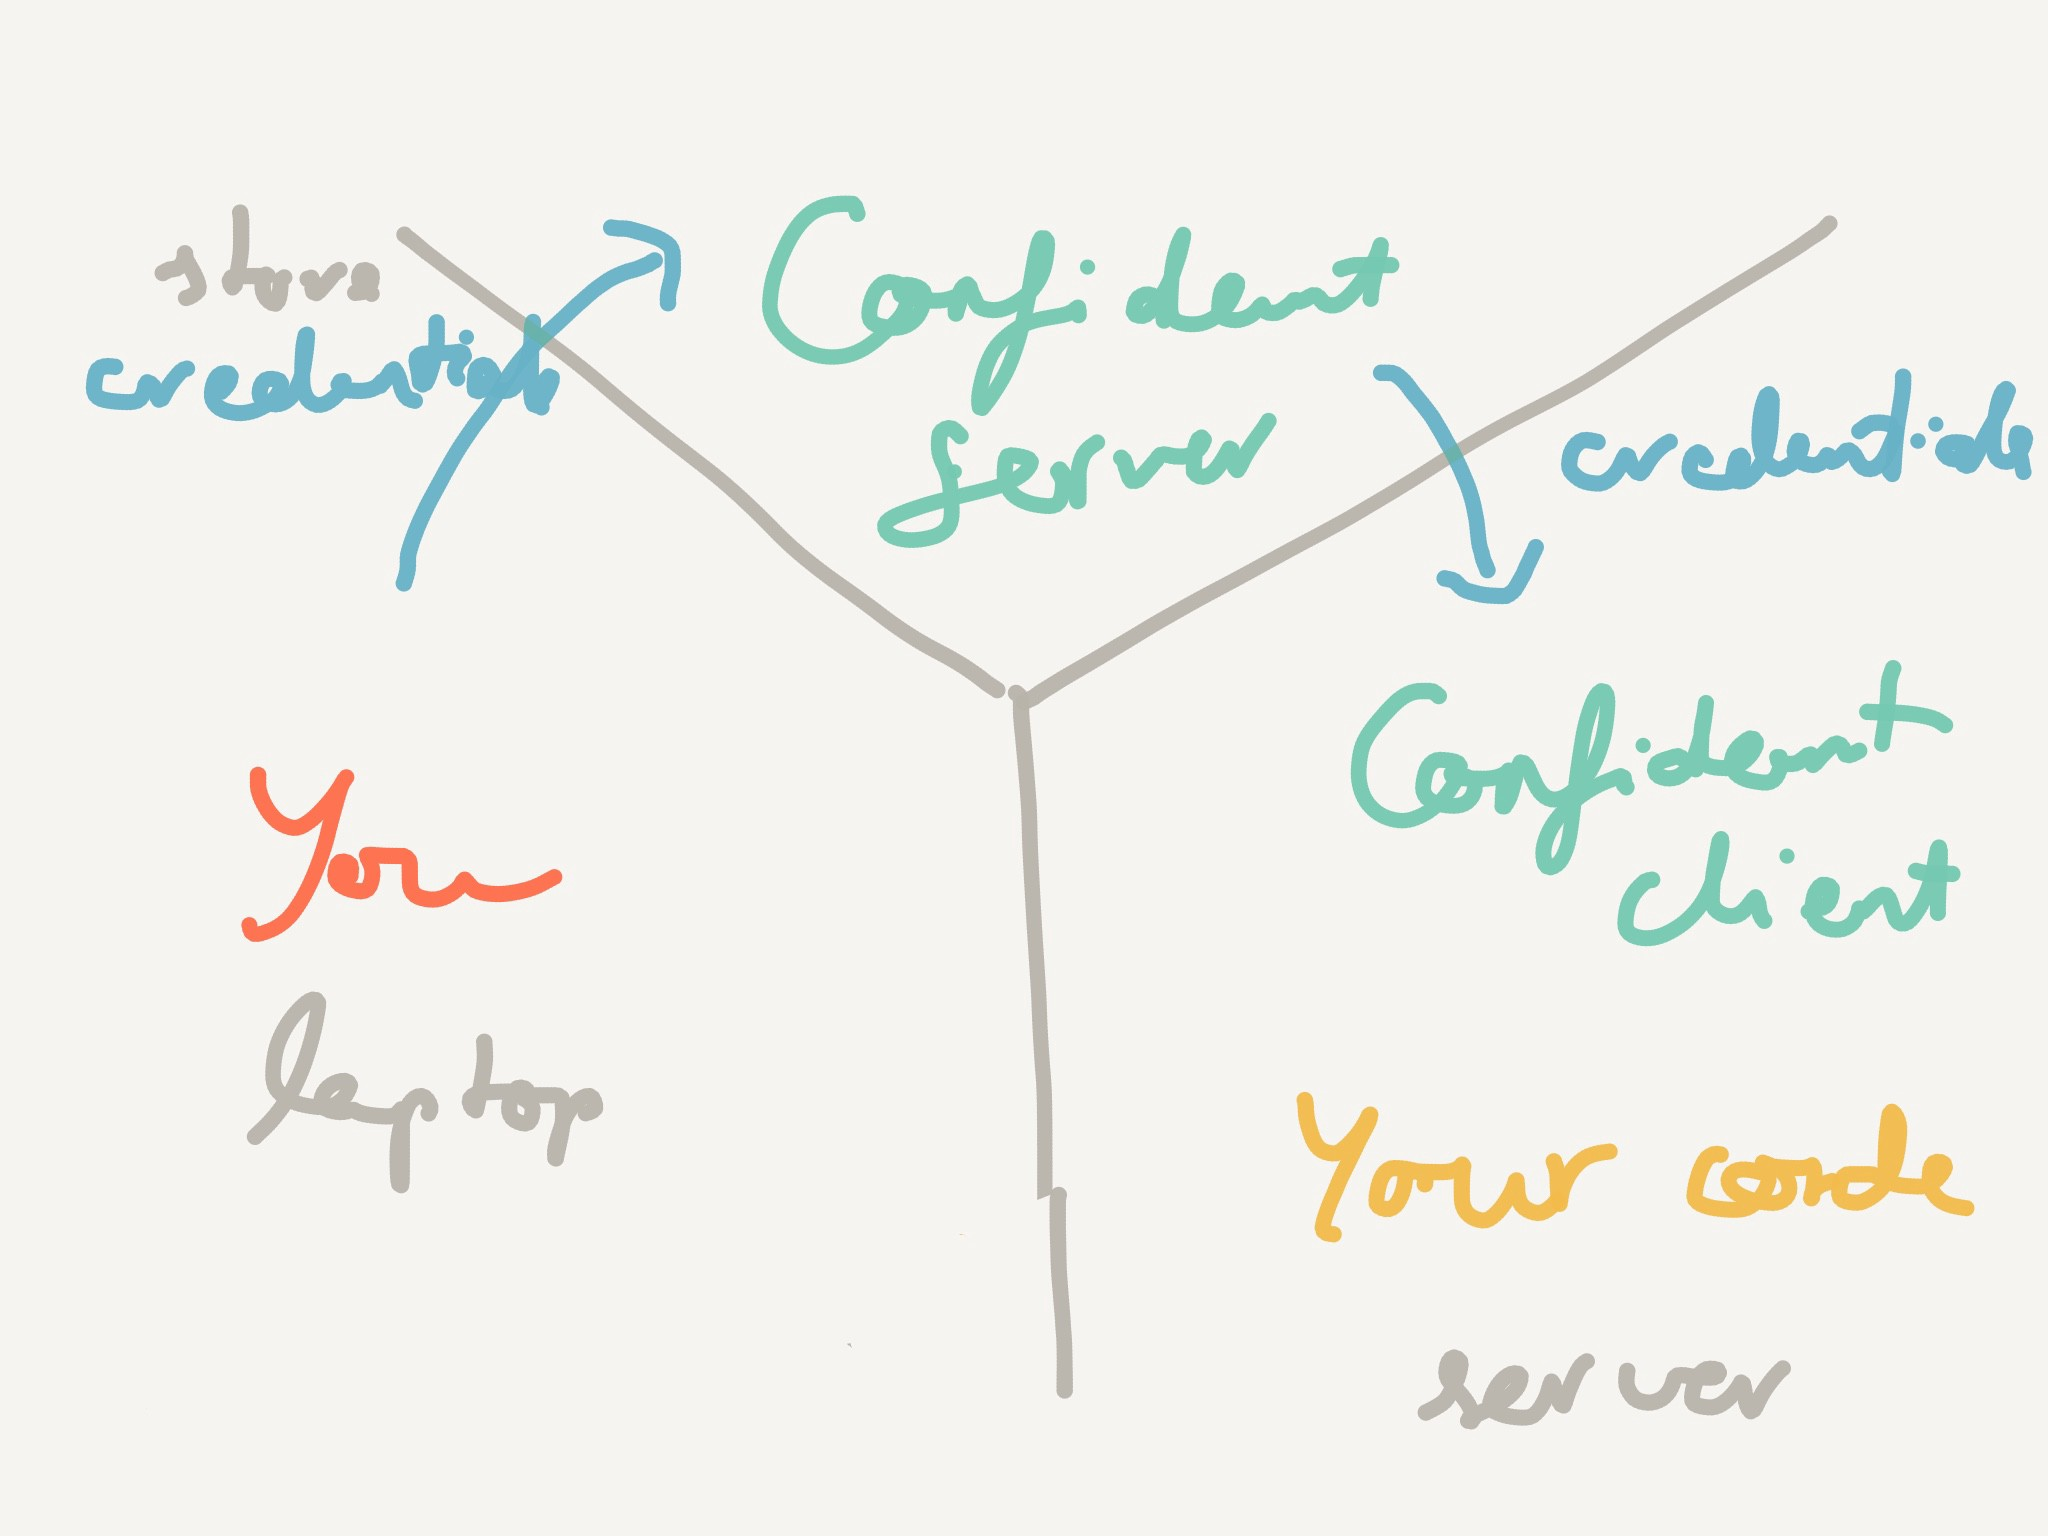 The workflow with Confidant